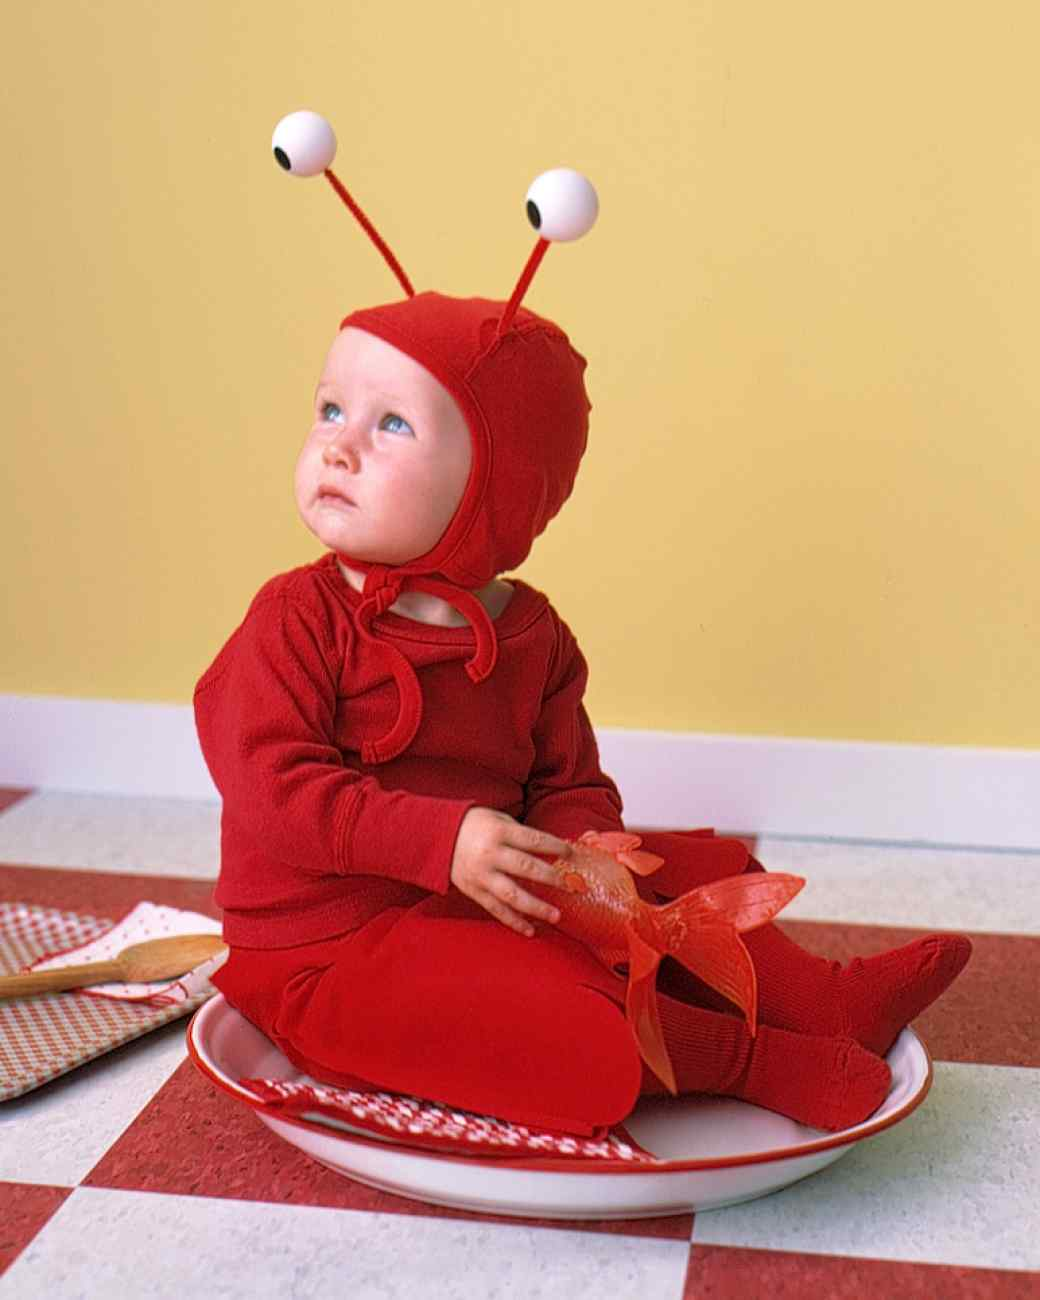 And this baby lobster costume isnu0027t DIY but itu0027s just so clawfully cute!  sc 1 st  Living Porpoisefully & Ocean Halloween Costumes Roundup u2013 Living Porpoisefully